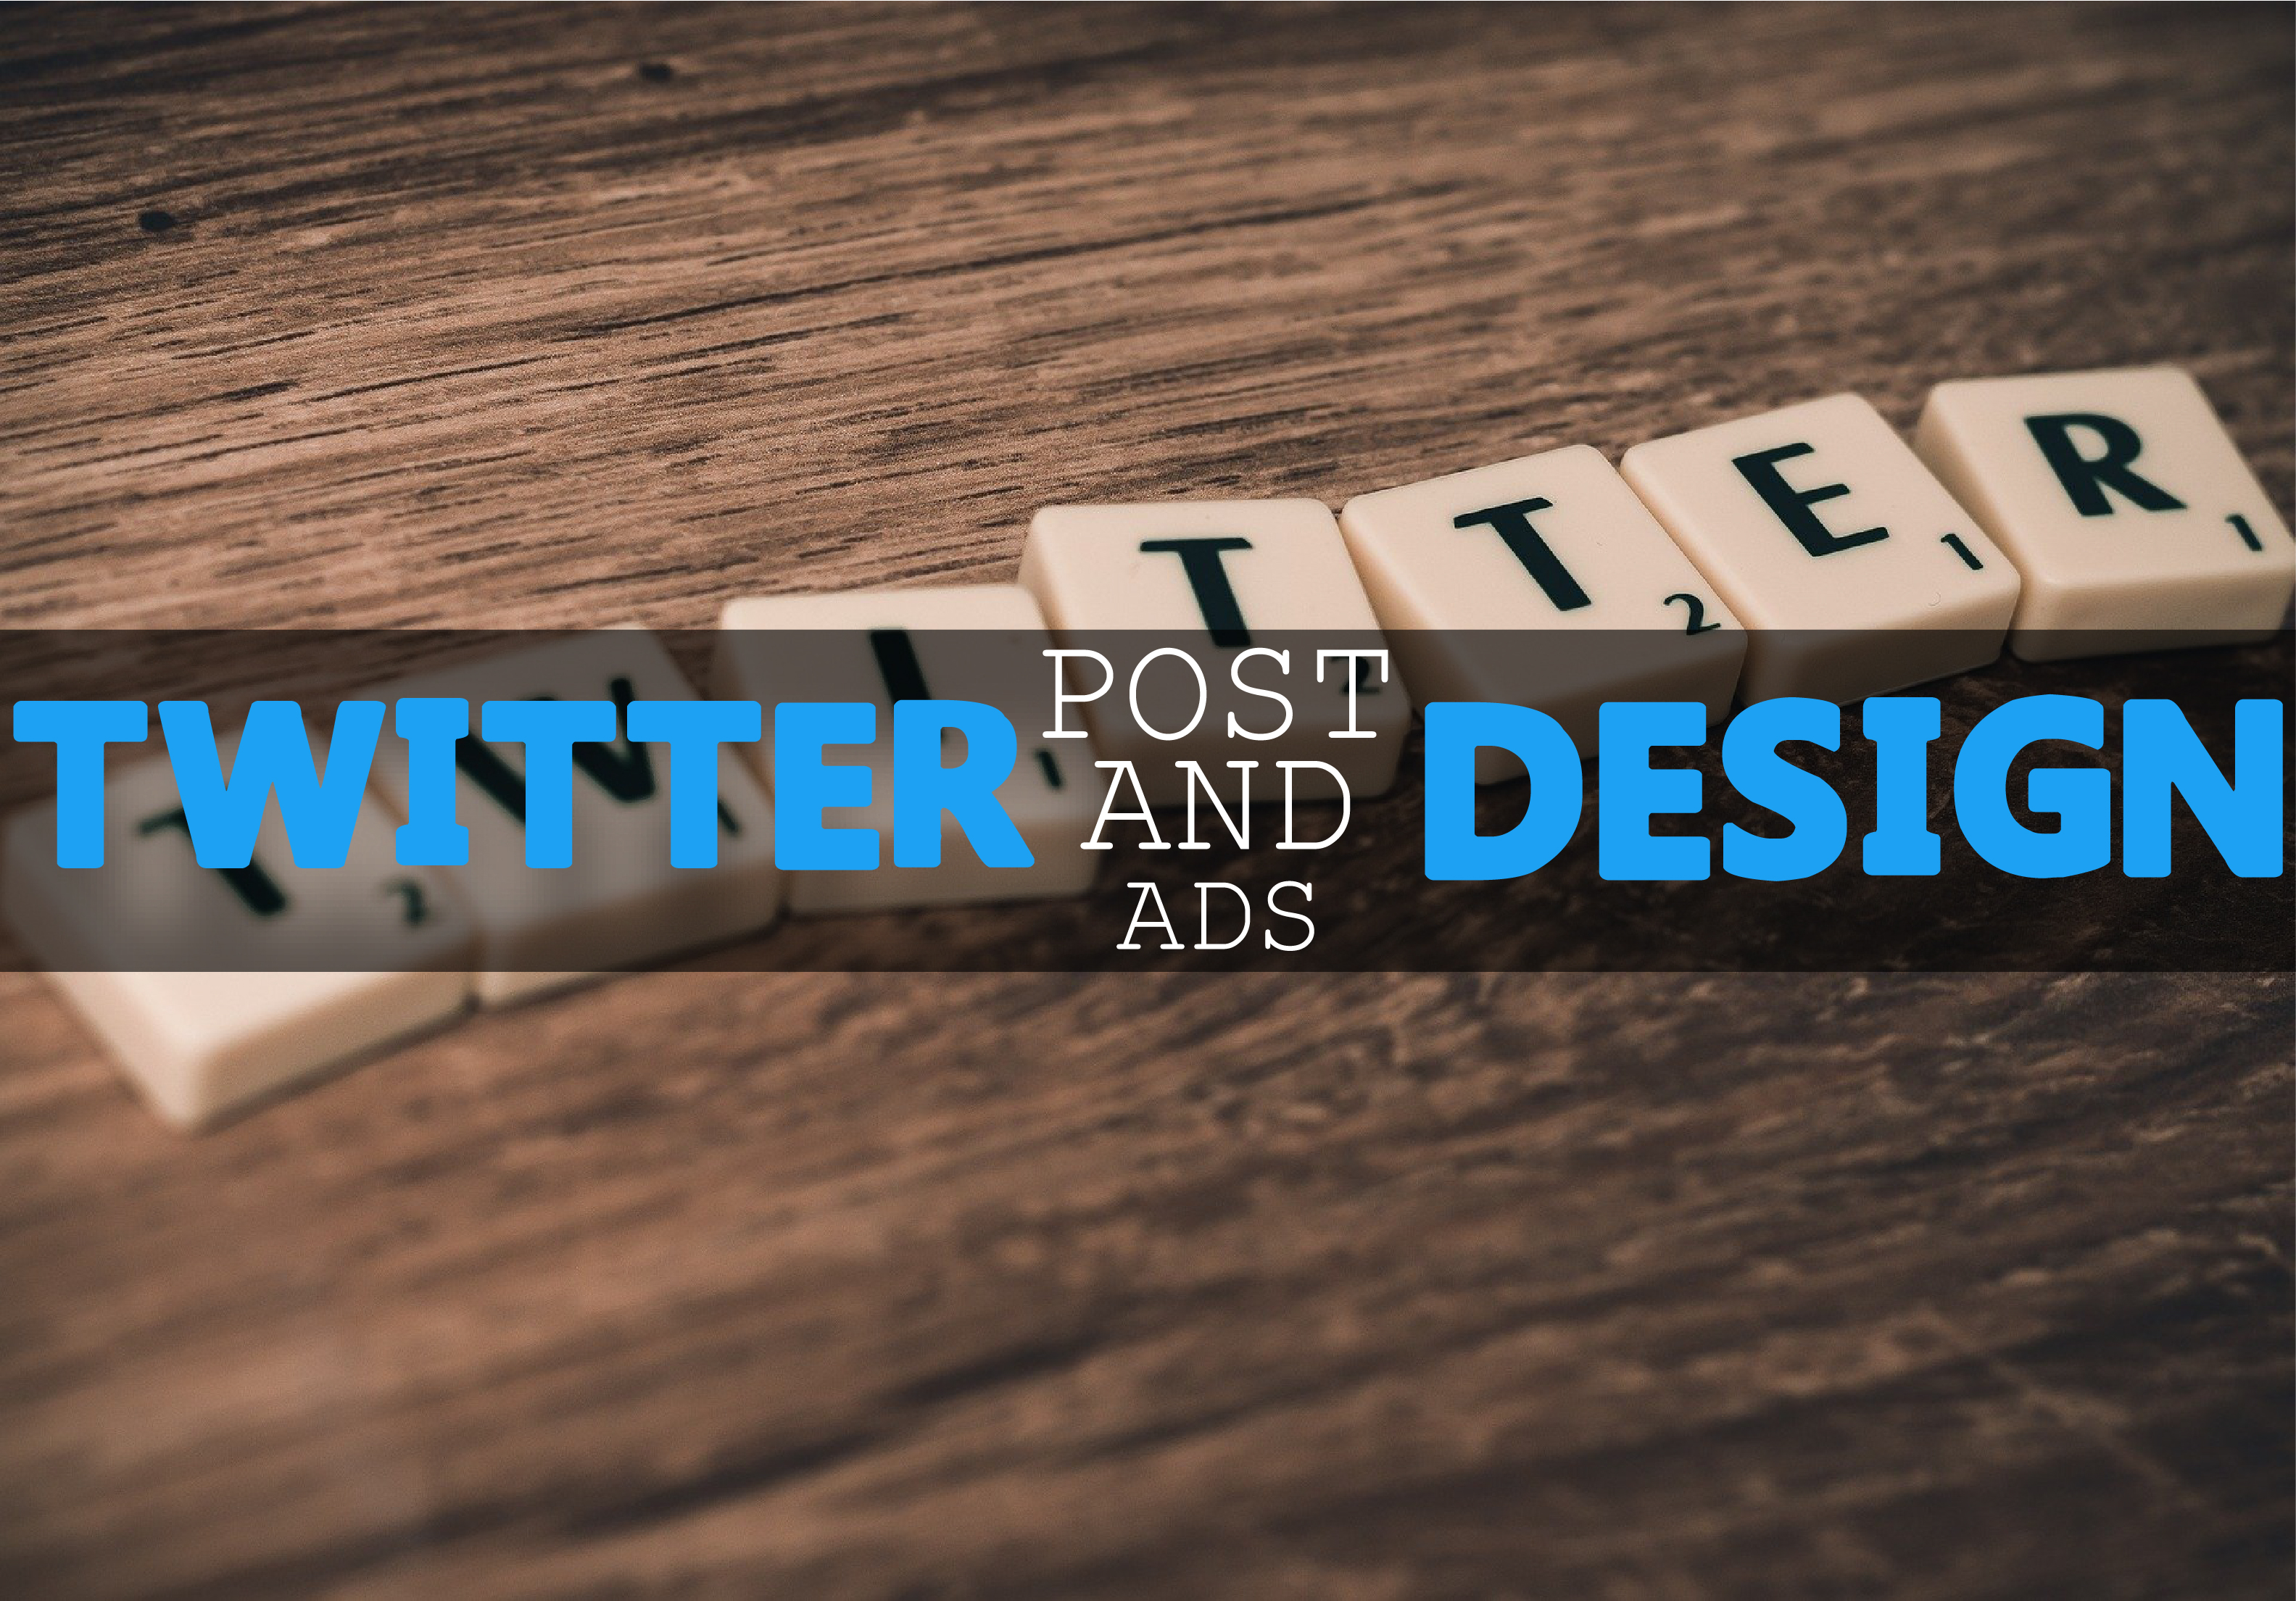 I will create attractive twitter post and ads design